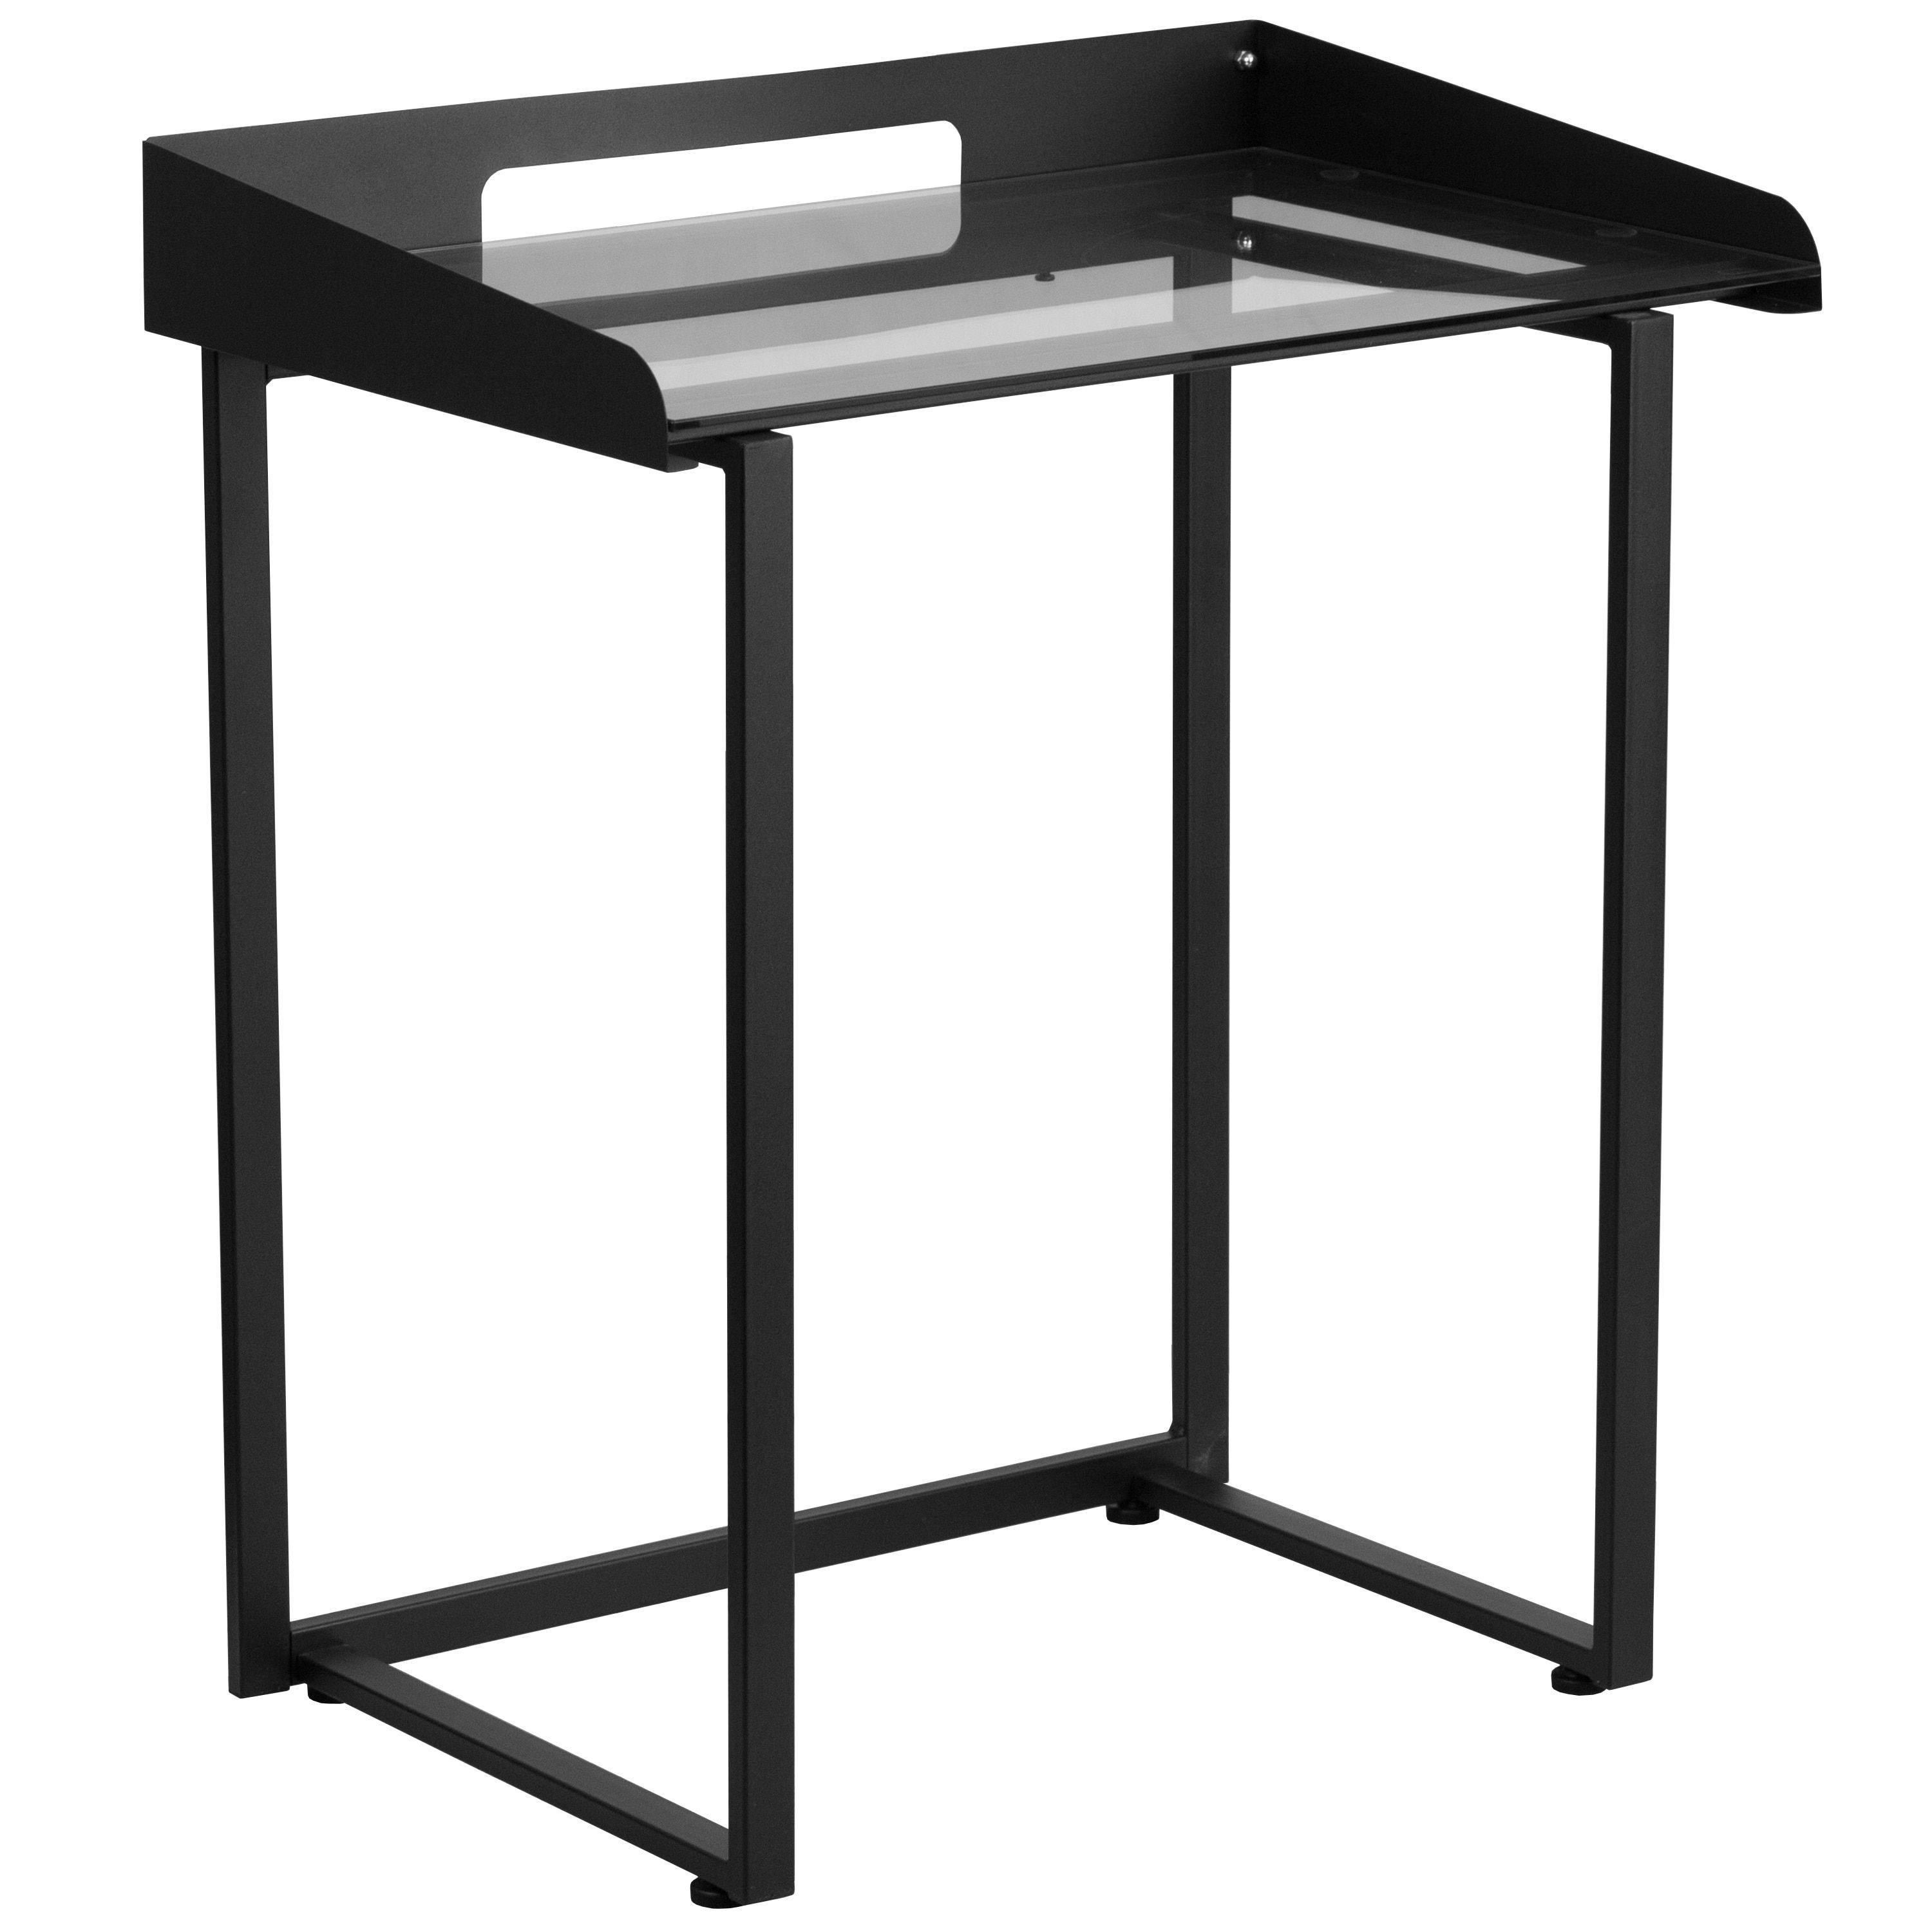 Kali Clear Tempered and Frame Contemporary Desk